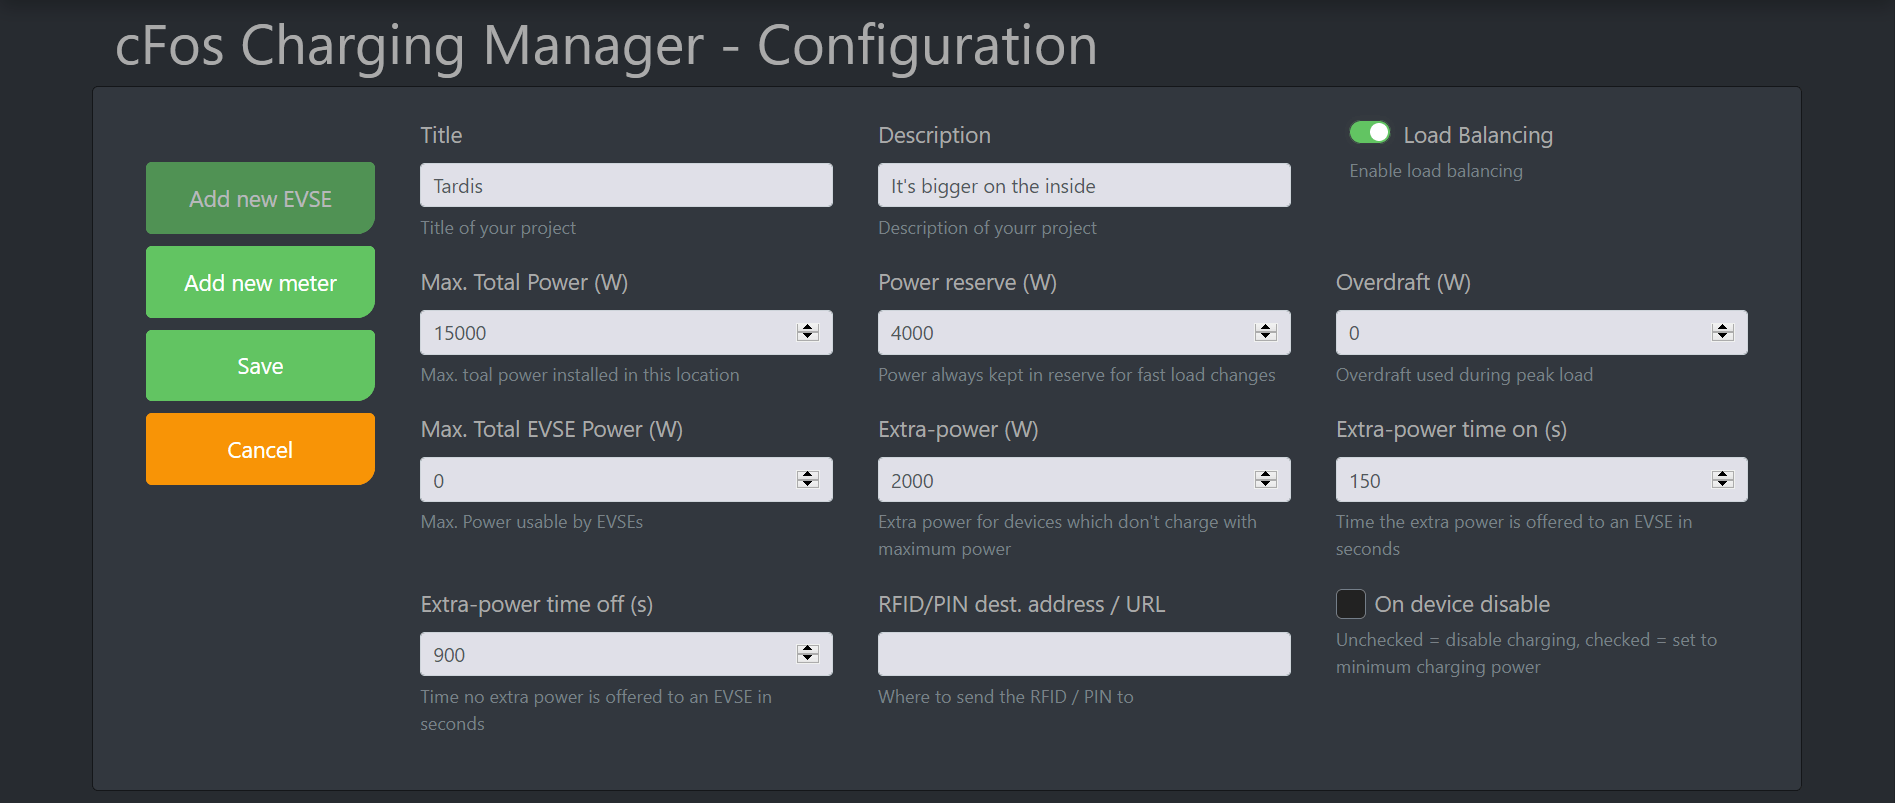 Screenshot #1 cFos Charging Manager Documentation - Configuration